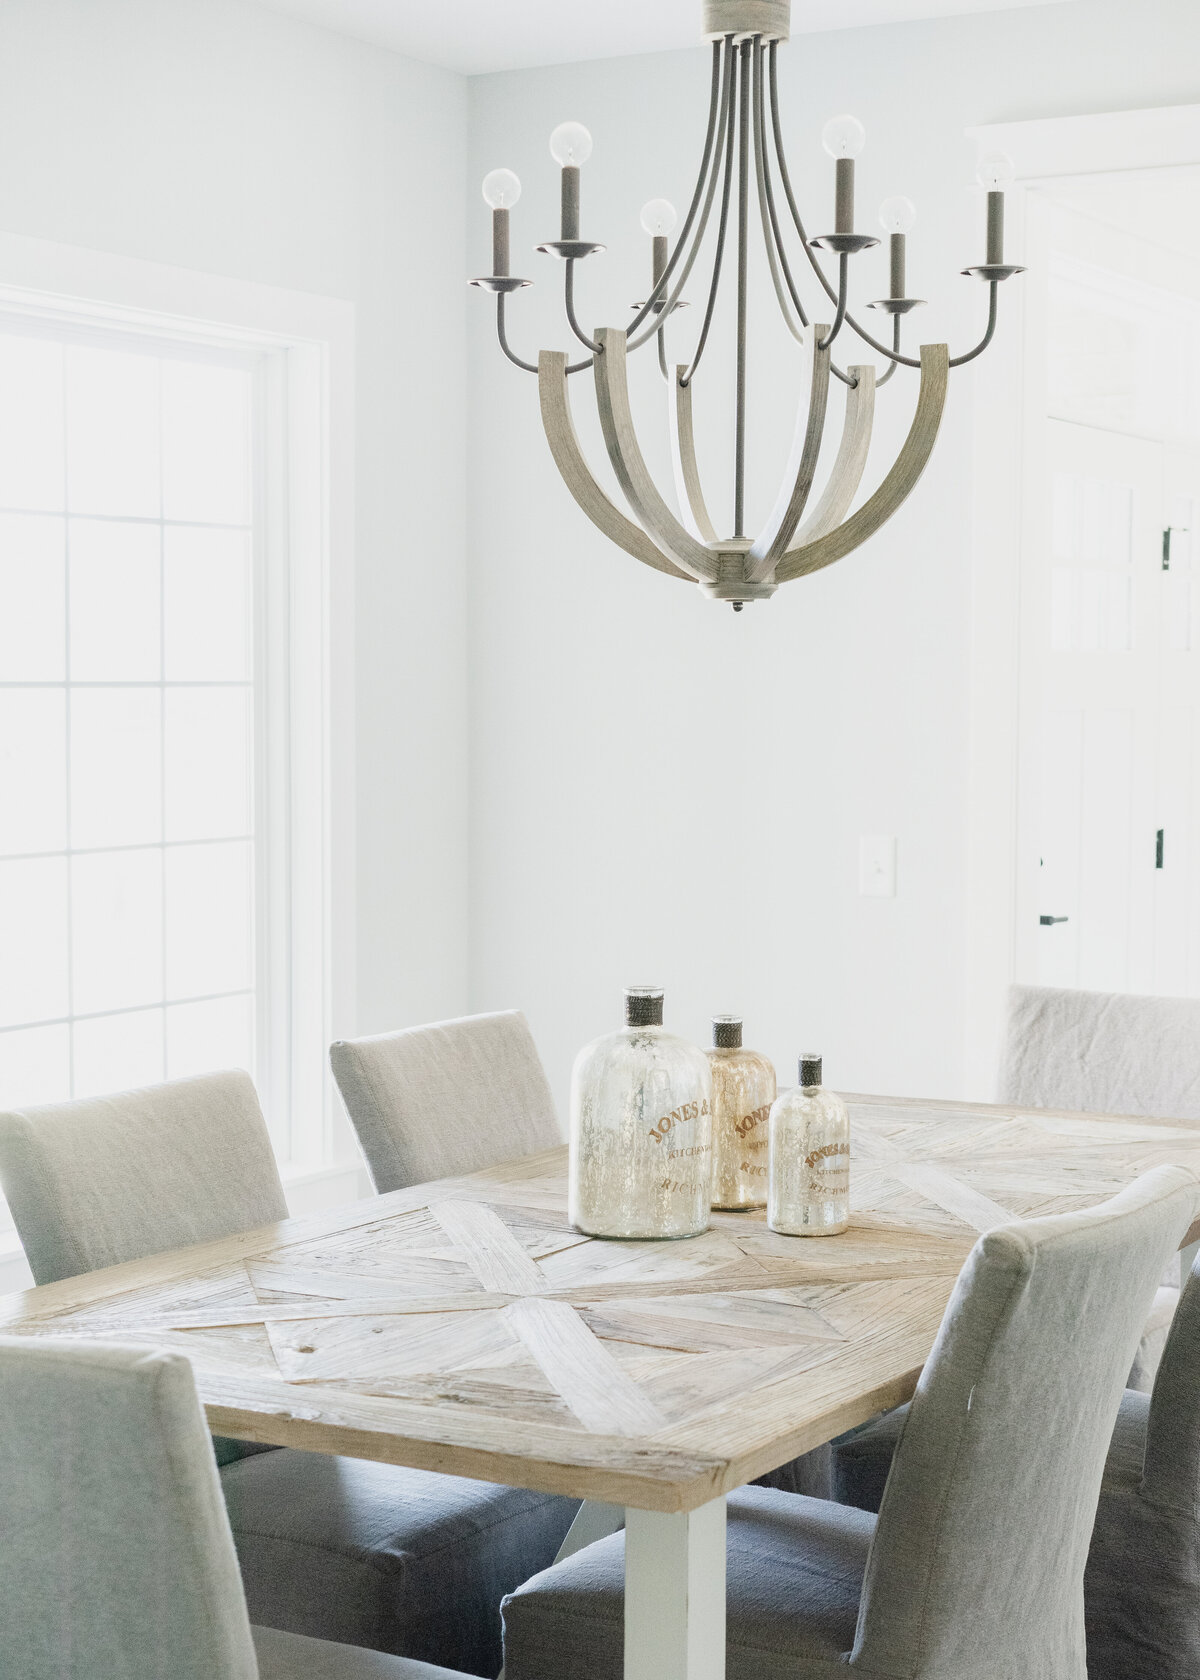 A parquet dining table is in a white room with grey dining chairs under a boho chandelier with apothecary interior decor.